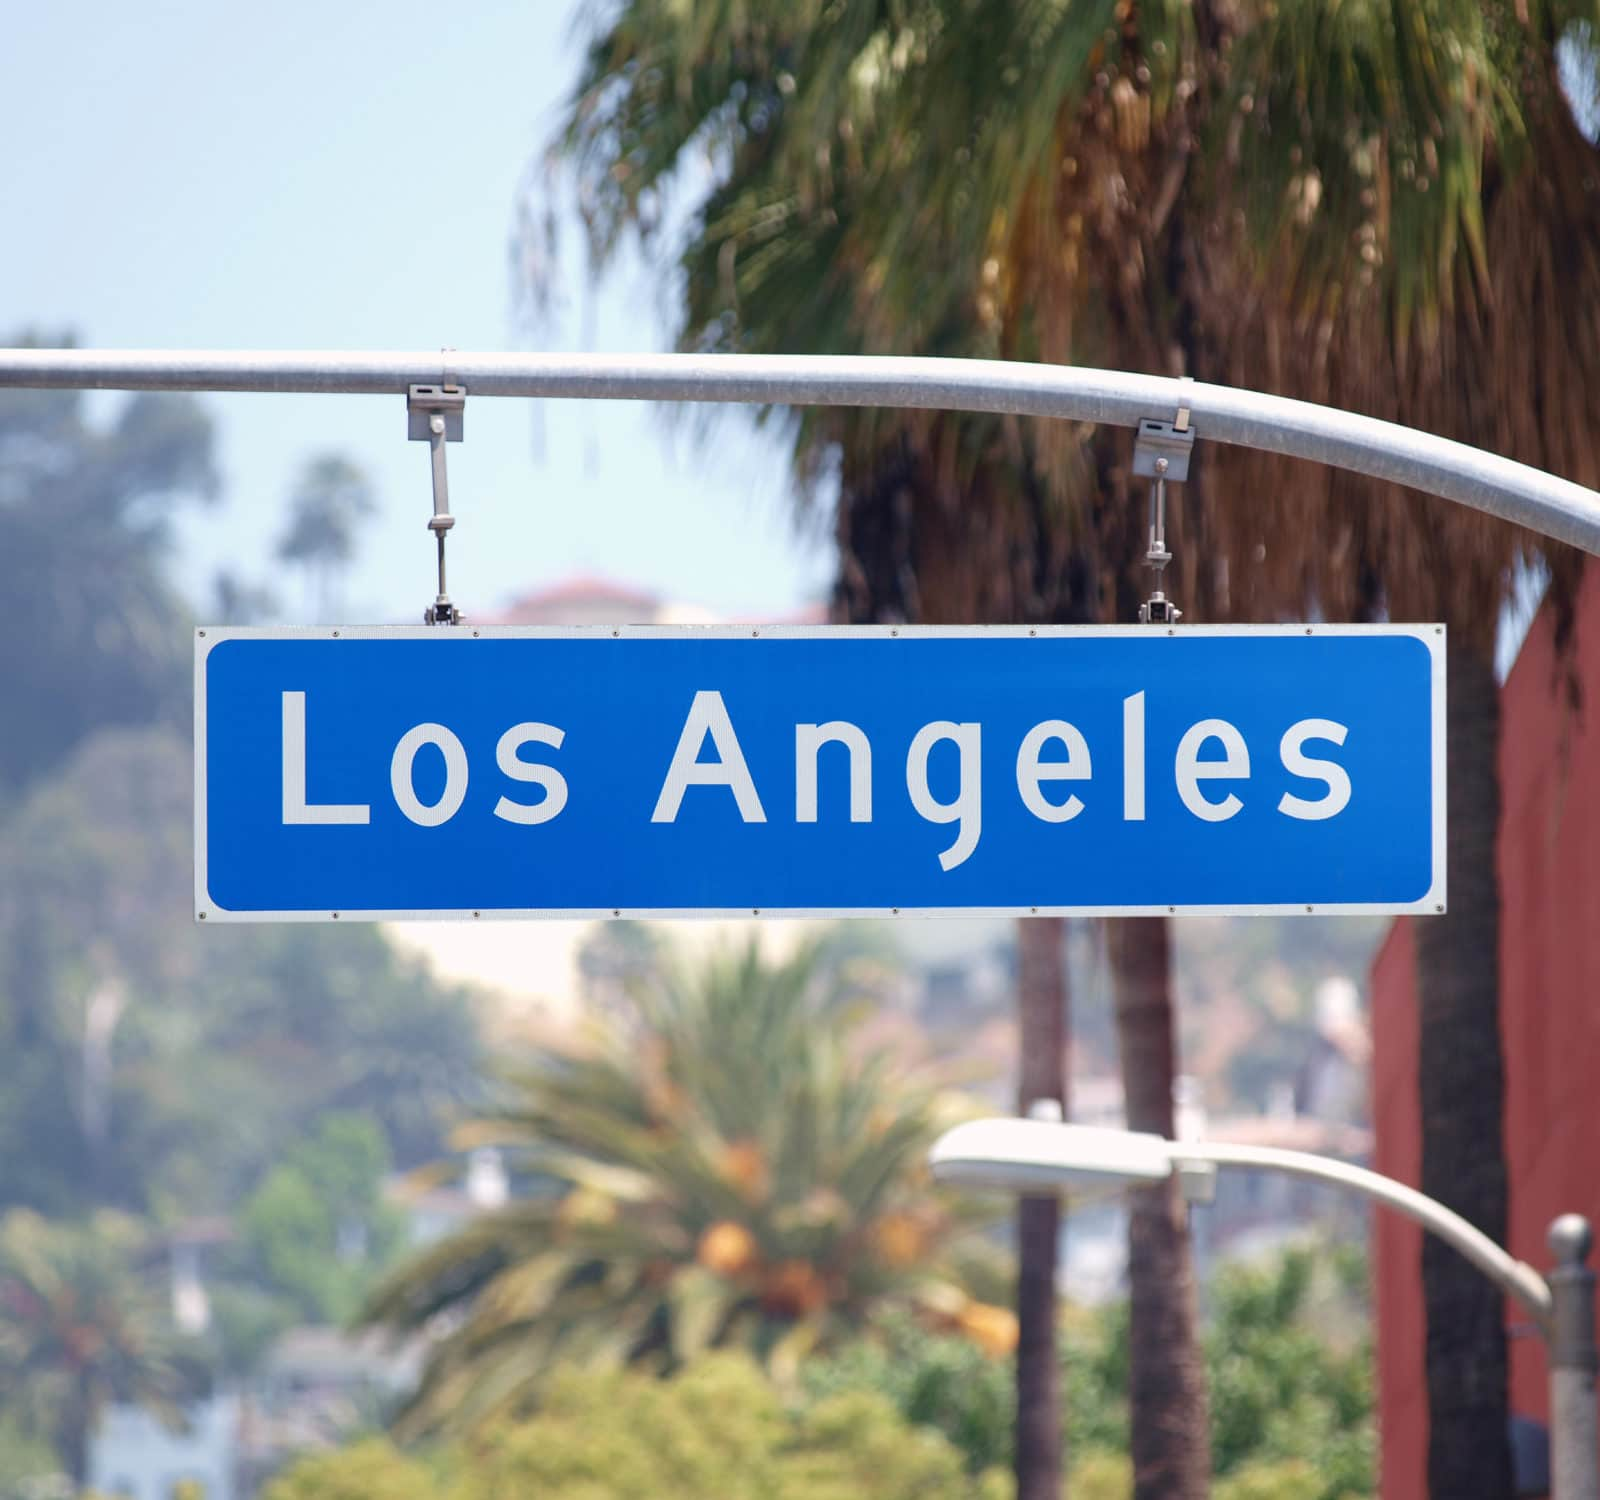 Moving from New York to Los Angeles